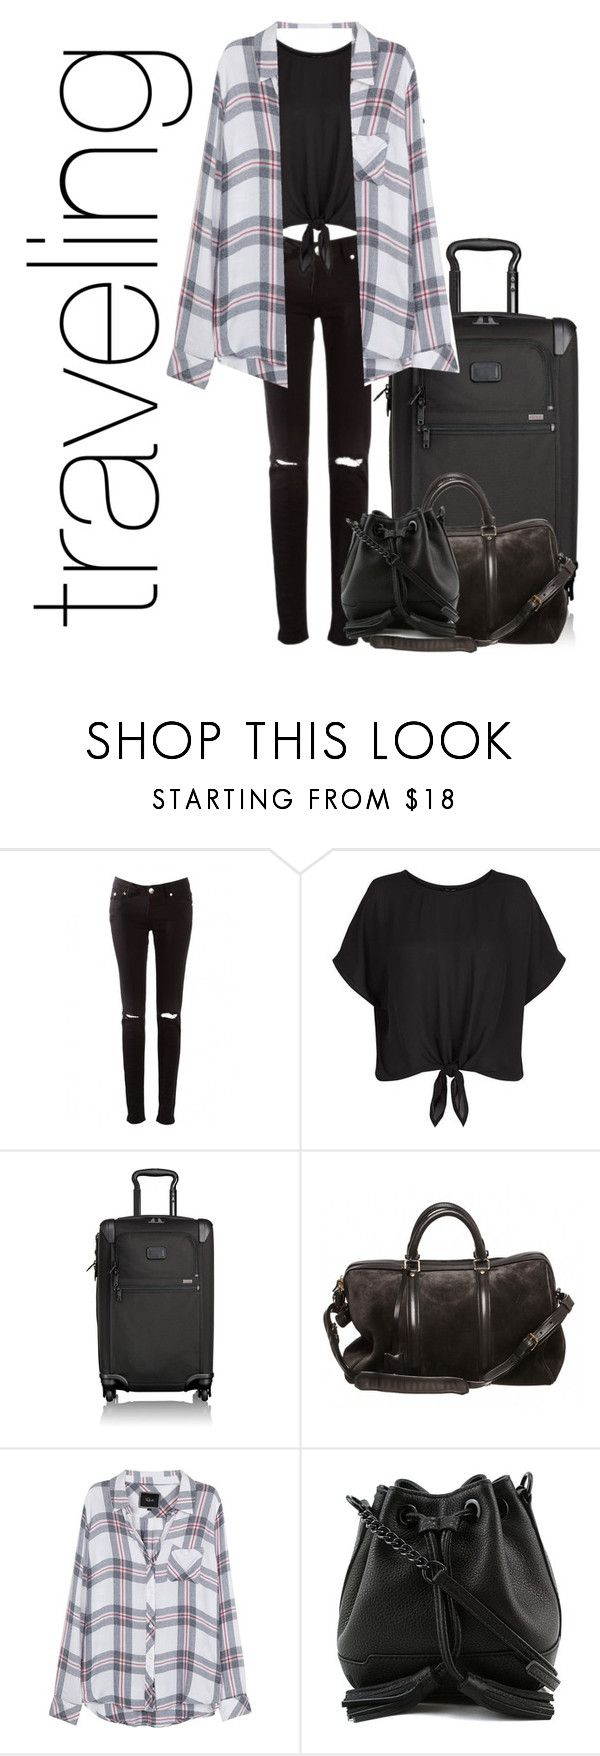 """Untitled #111"" by punkass-unicorn on Polyvore featuring New Look, Tumi, Louis Vuitton, Rails and Rebecca Minkoff"